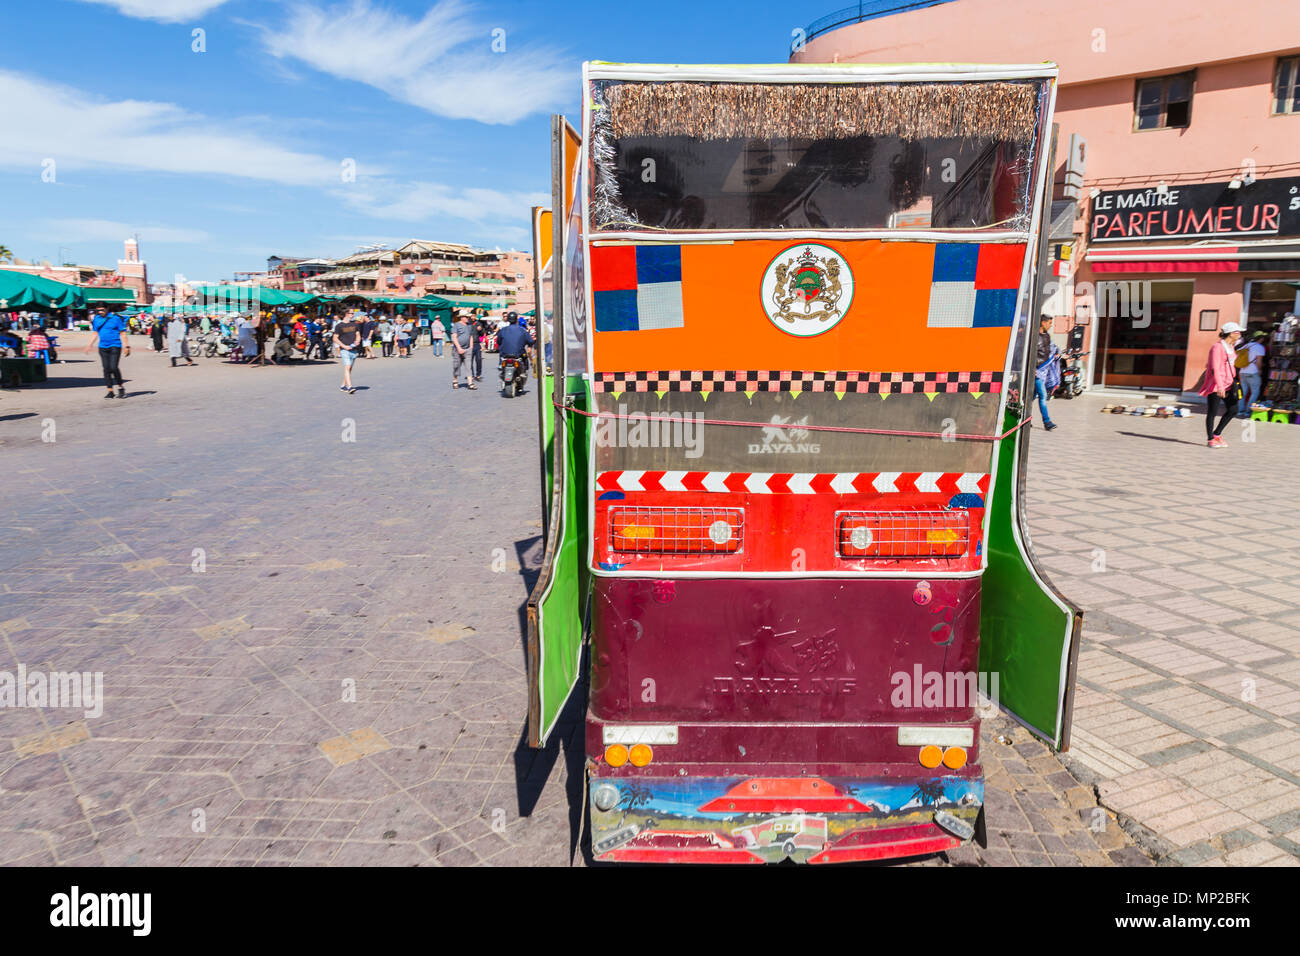 A medina taxi in Jamaa el fna square, Marrakech, Morocco. - Stock Image